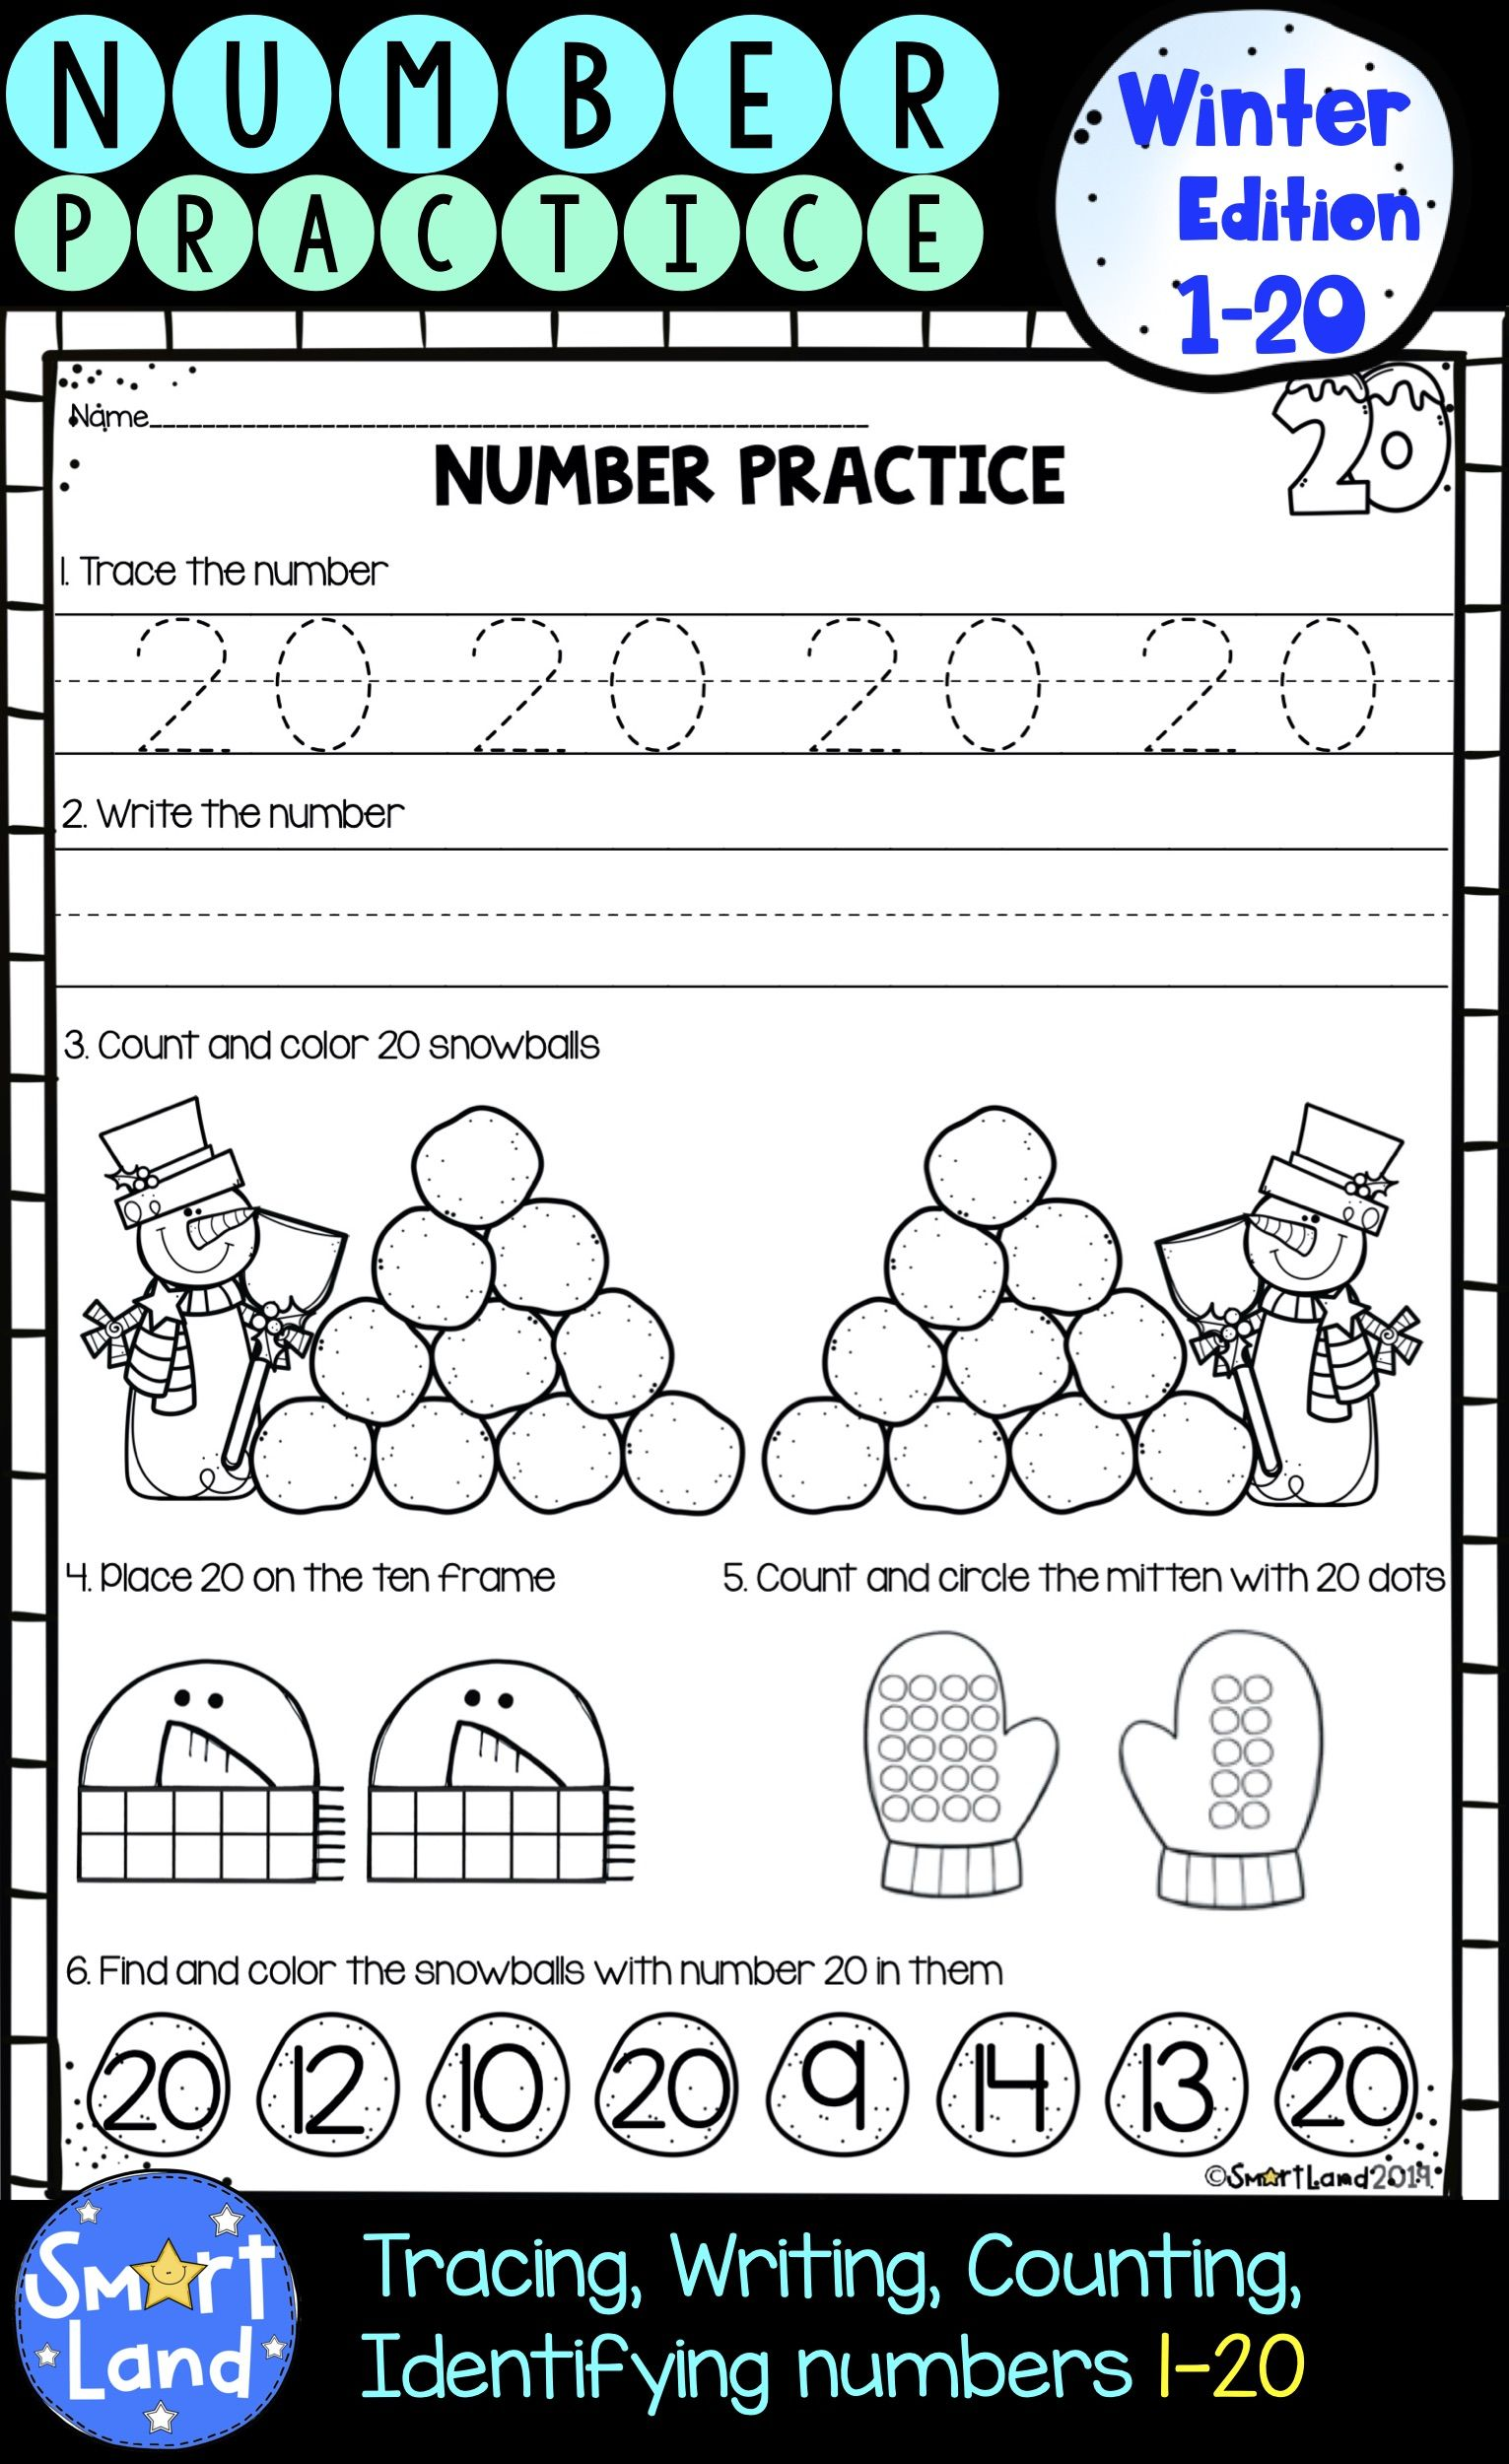 Numbers 1 20 Handwriting And Counting Practice Worksheets Winter Edition Writing Numbers Preschool Math Worksheets Winter Break Math [ 2500 x 1531 Pixel ]